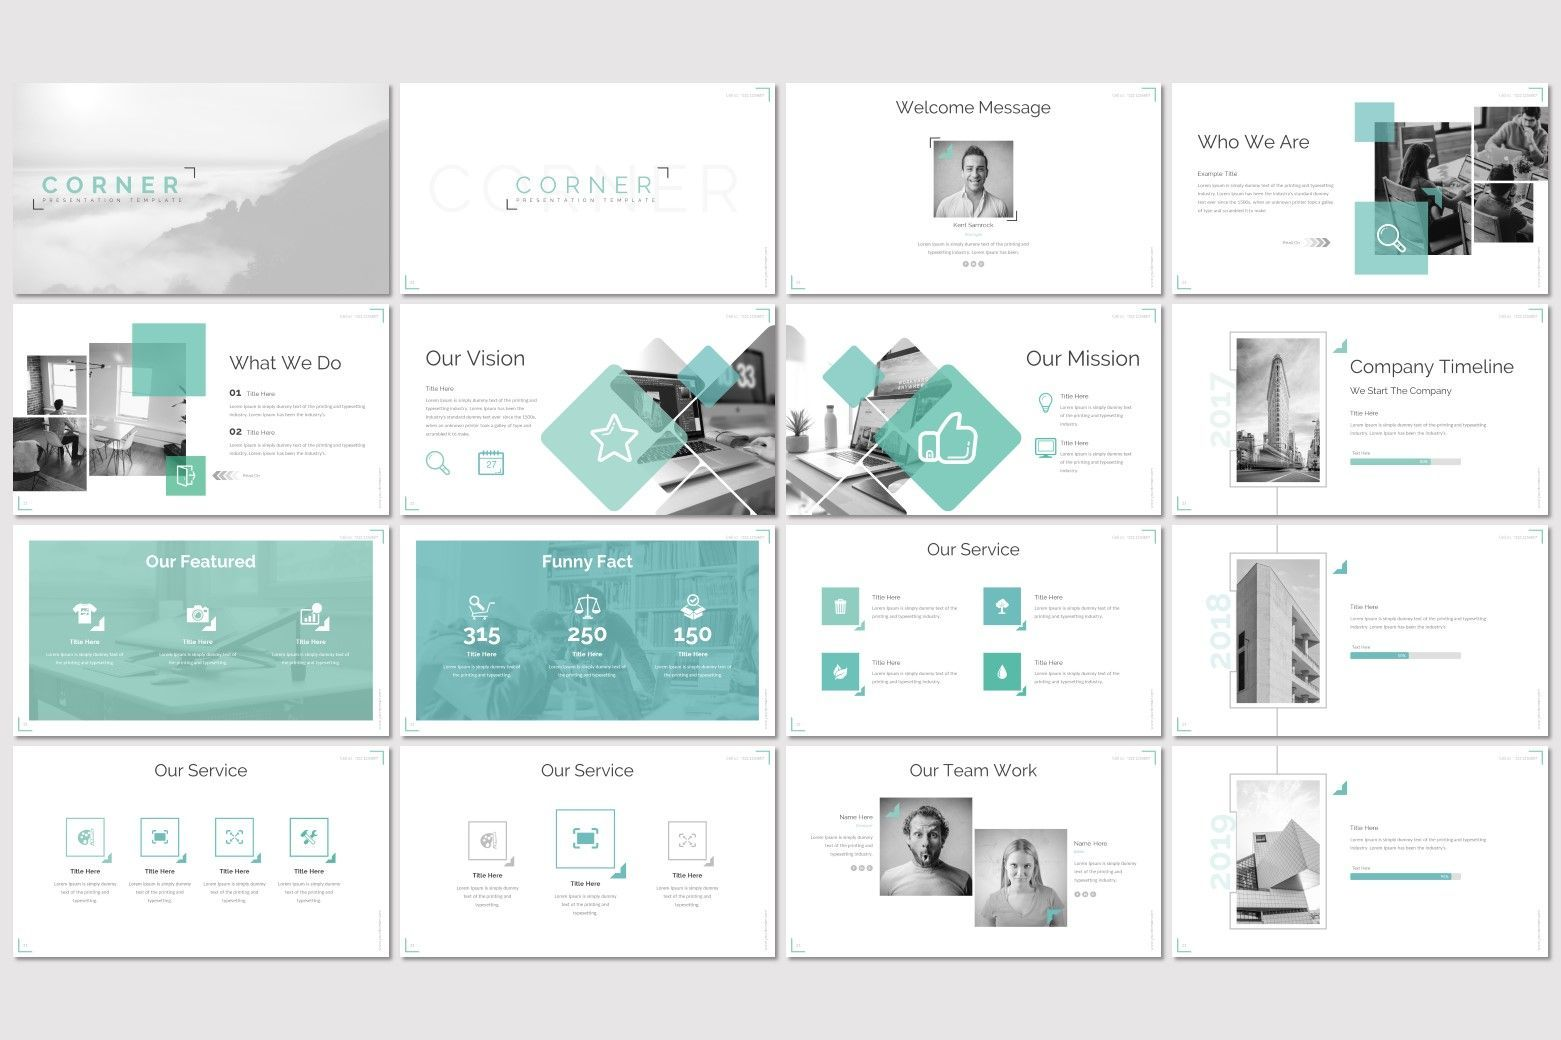 Corner - Google Slides Template, Slide 2, 07155, Presentation Templates — PoweredTemplate.com